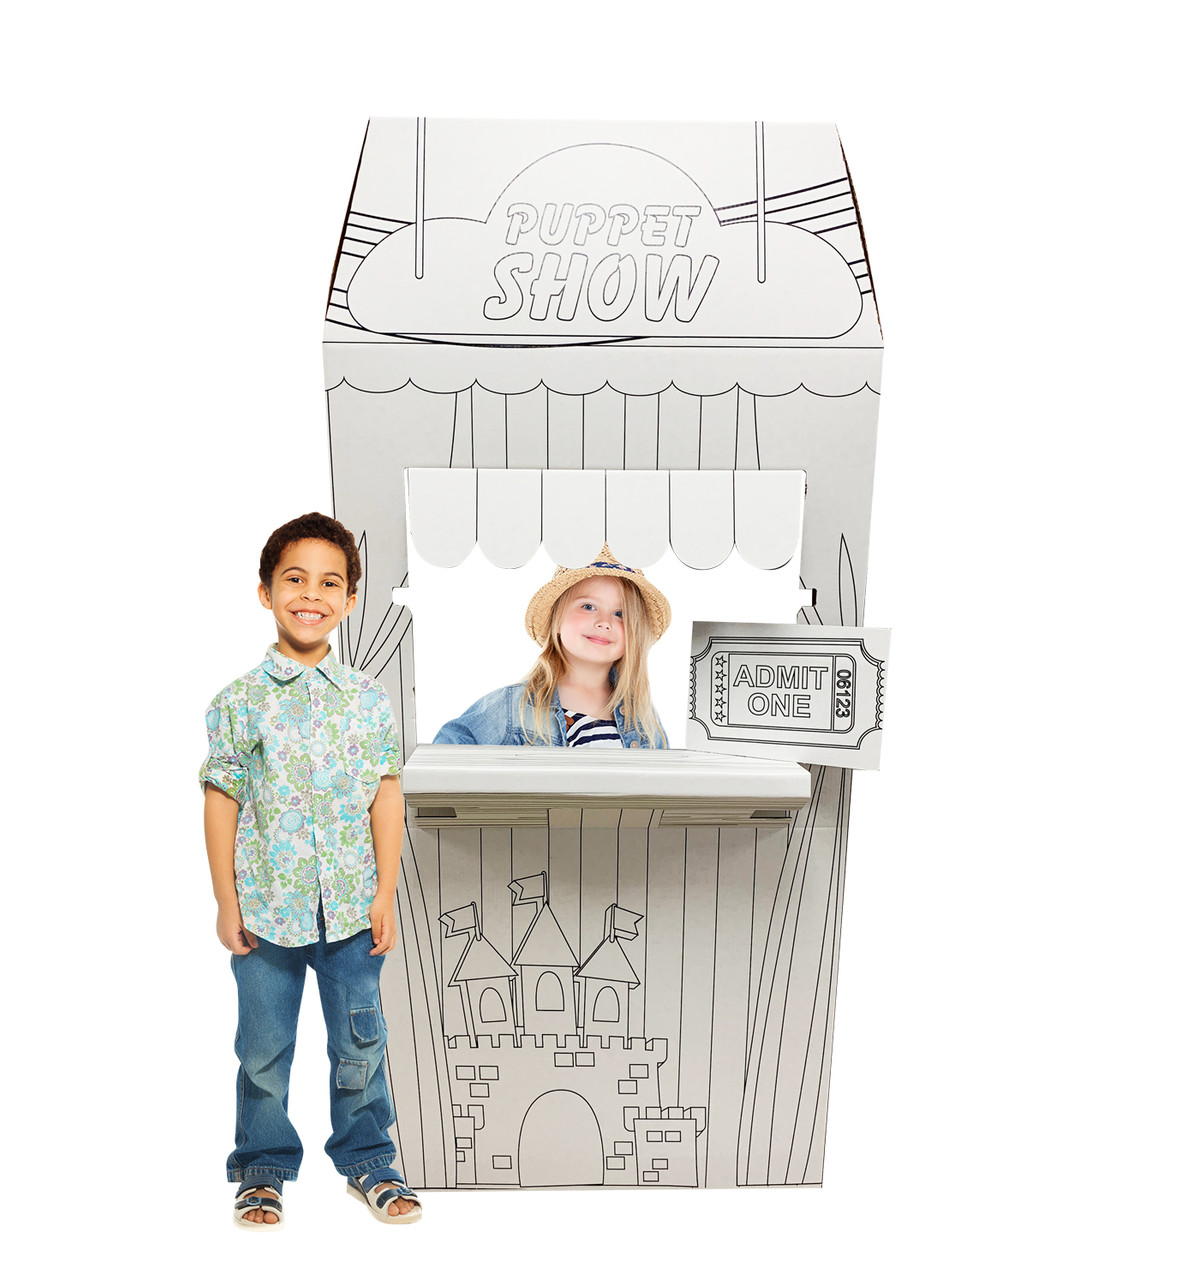 Life-size Color Me Puppet Show Stand with models.